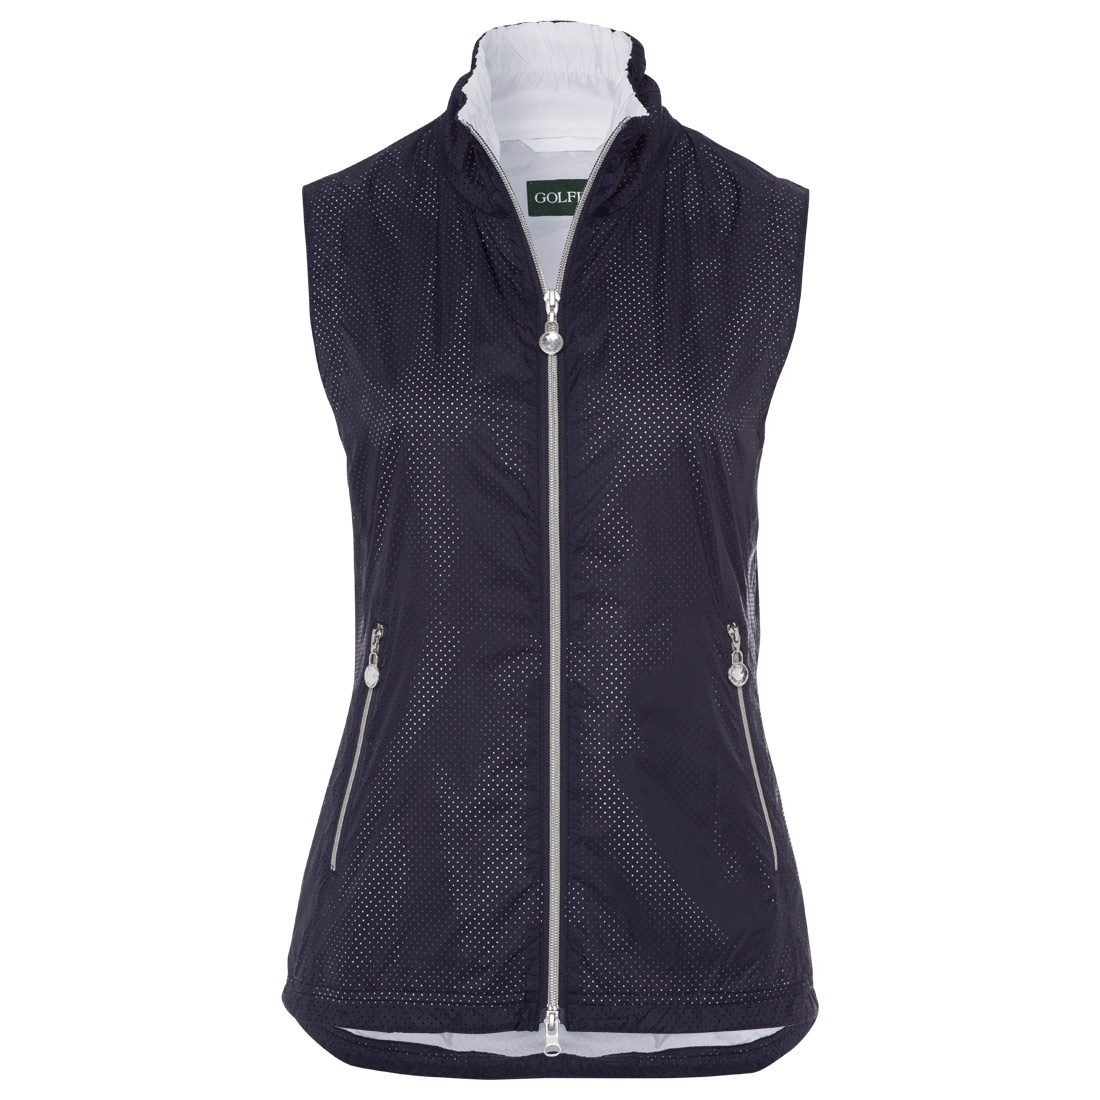 Ladies' gilet with dot effect